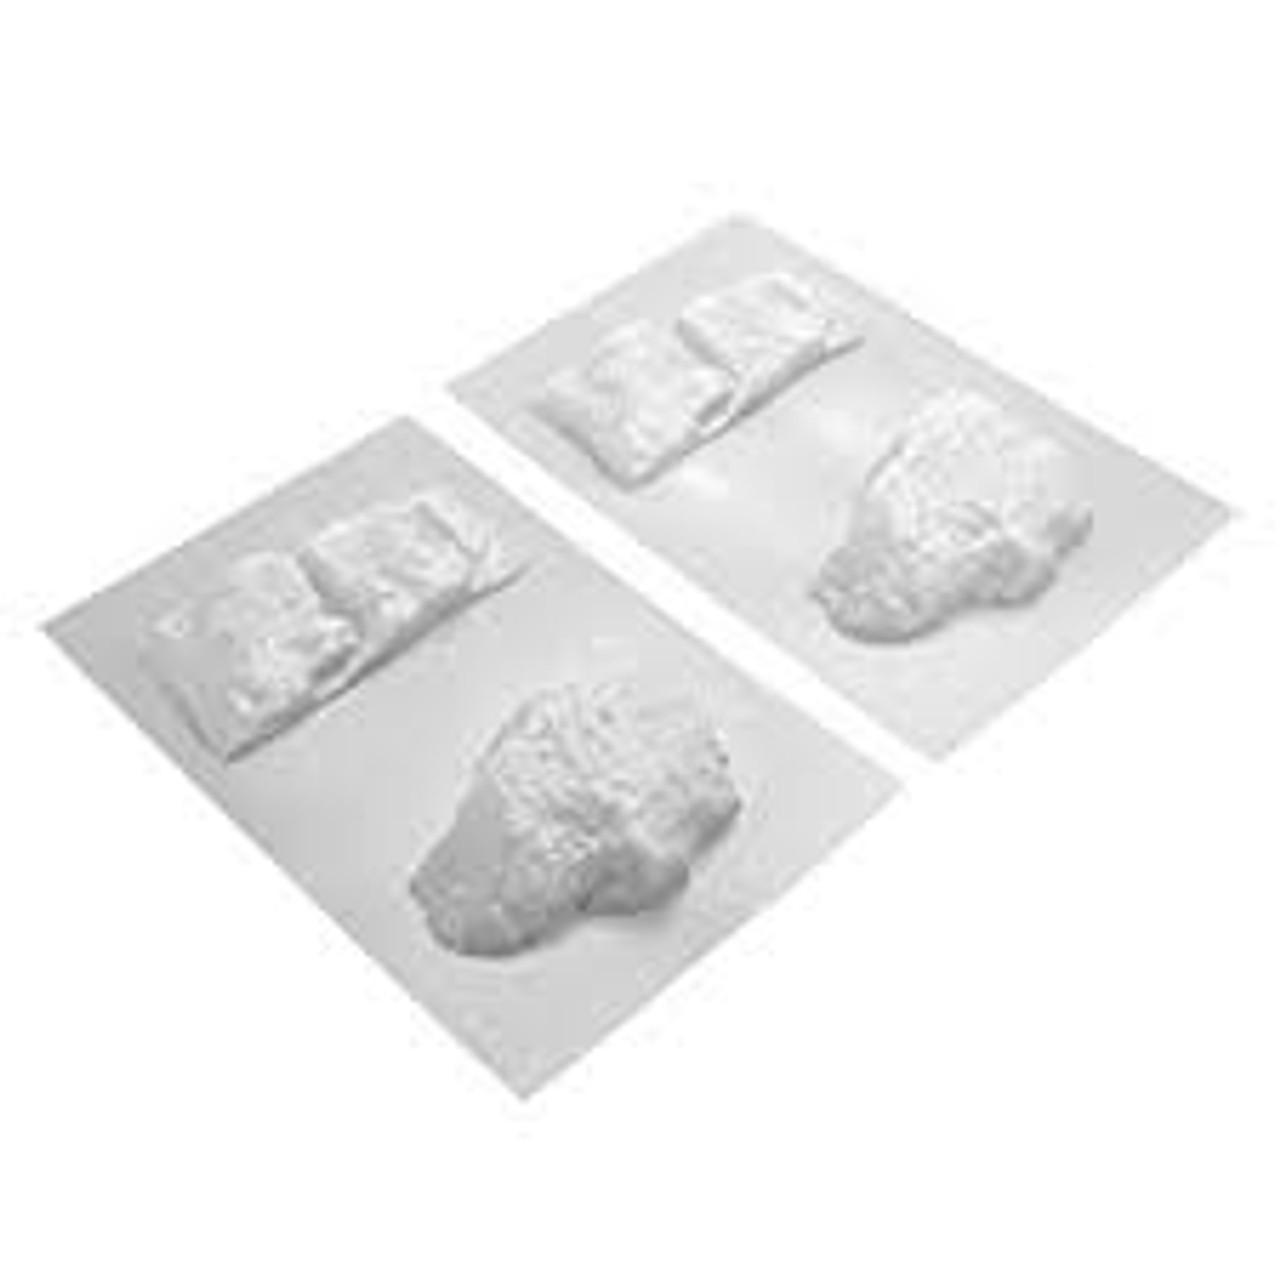 2//pk 97470 JTT Scenery Products All-Scale Outcroppings Plastic Pattern Sheet